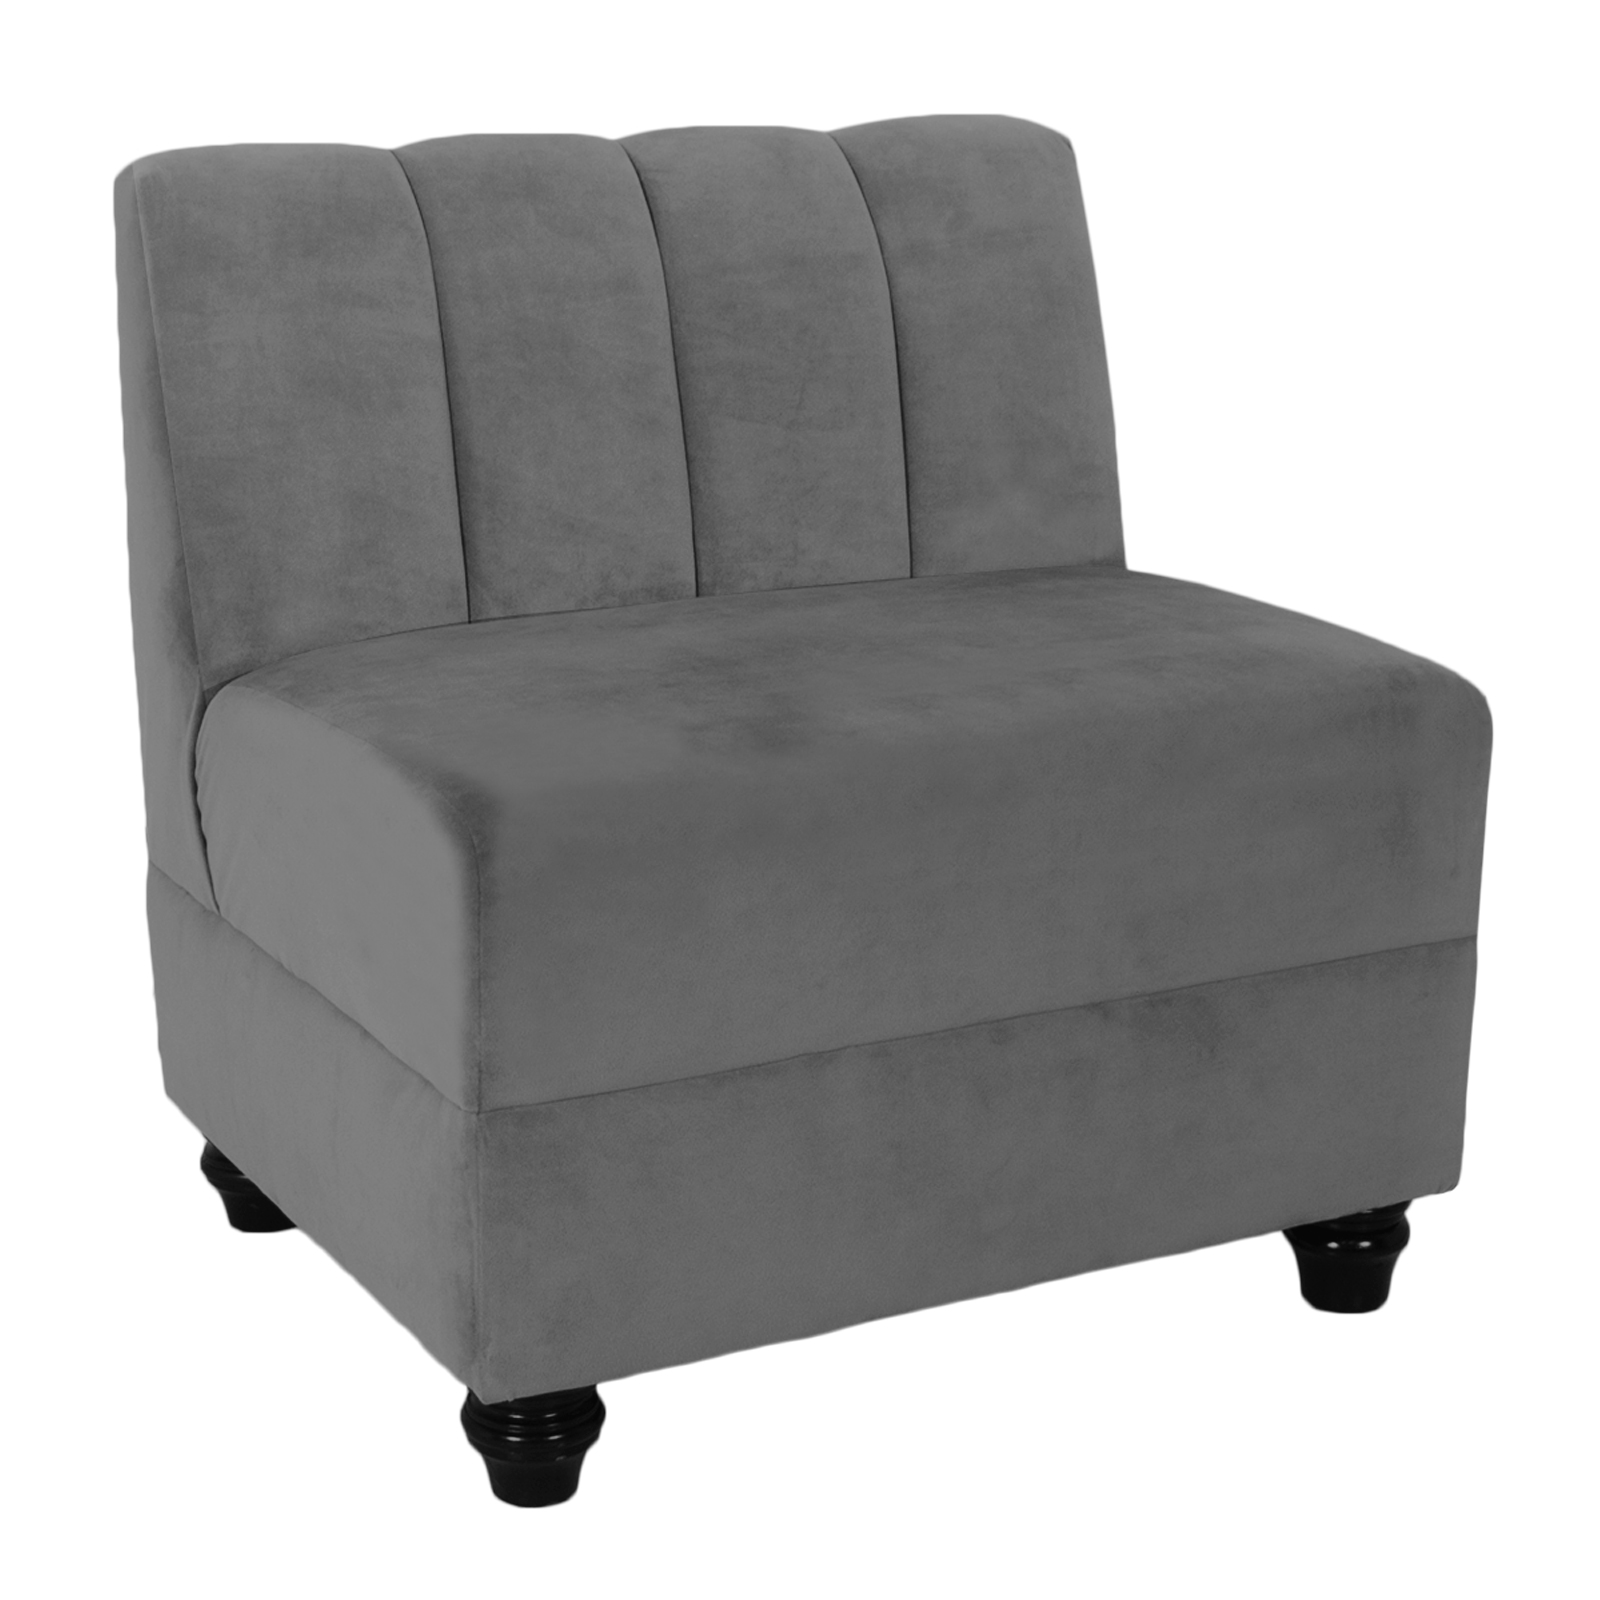 Grey Lounge Chair Lounge Chair Rentals Event Rental Furniture Formdecor